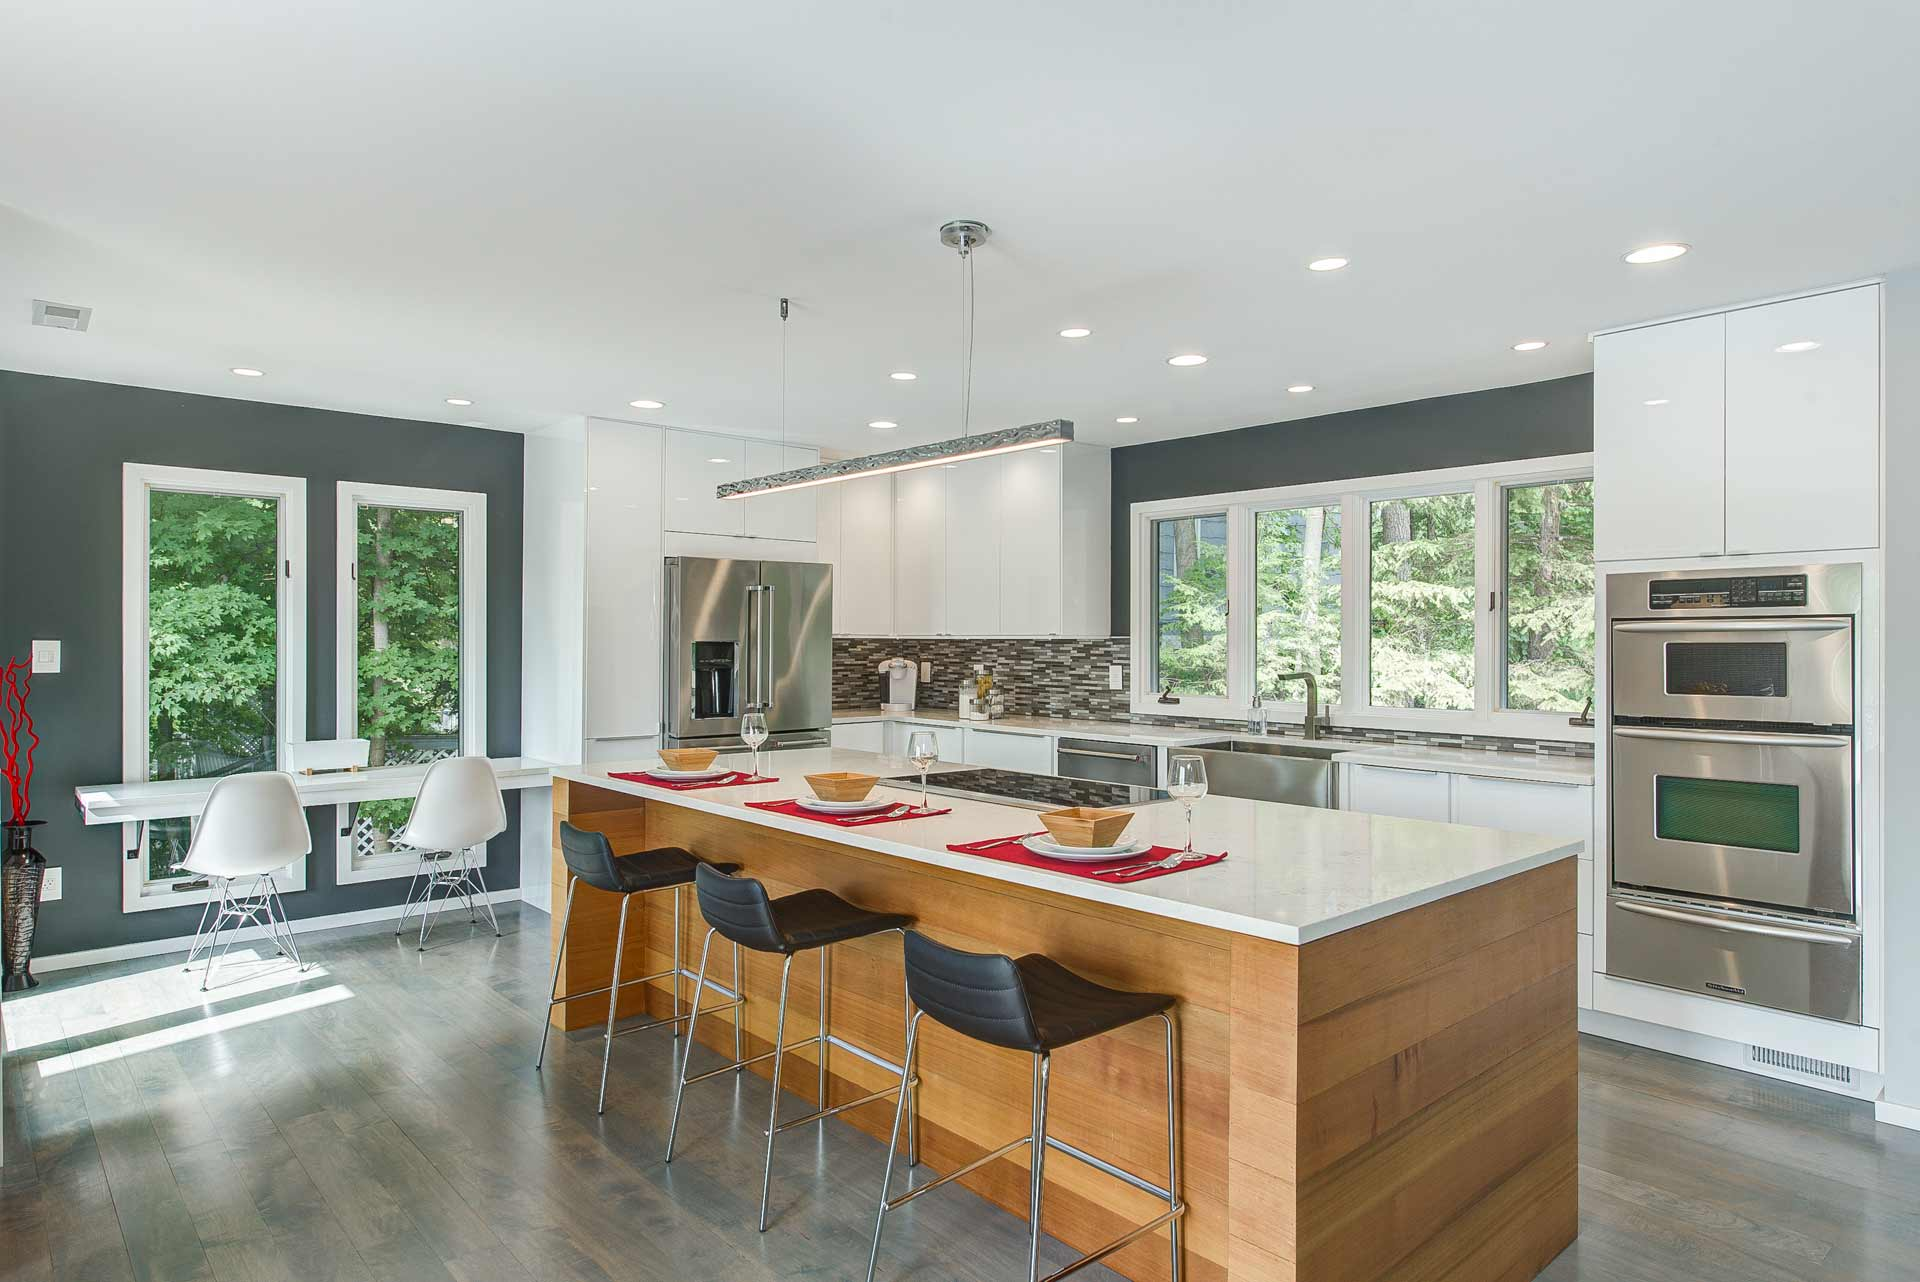 New expanded kitchen space includes new Cedar wrapped island, white quartz tops, and white IKEA cabinetry with gray accent walls and a laptop counter - Reef Court Light Renovation - Geist Reservoir - Indianapolis, IN - Photo by Structured Photography